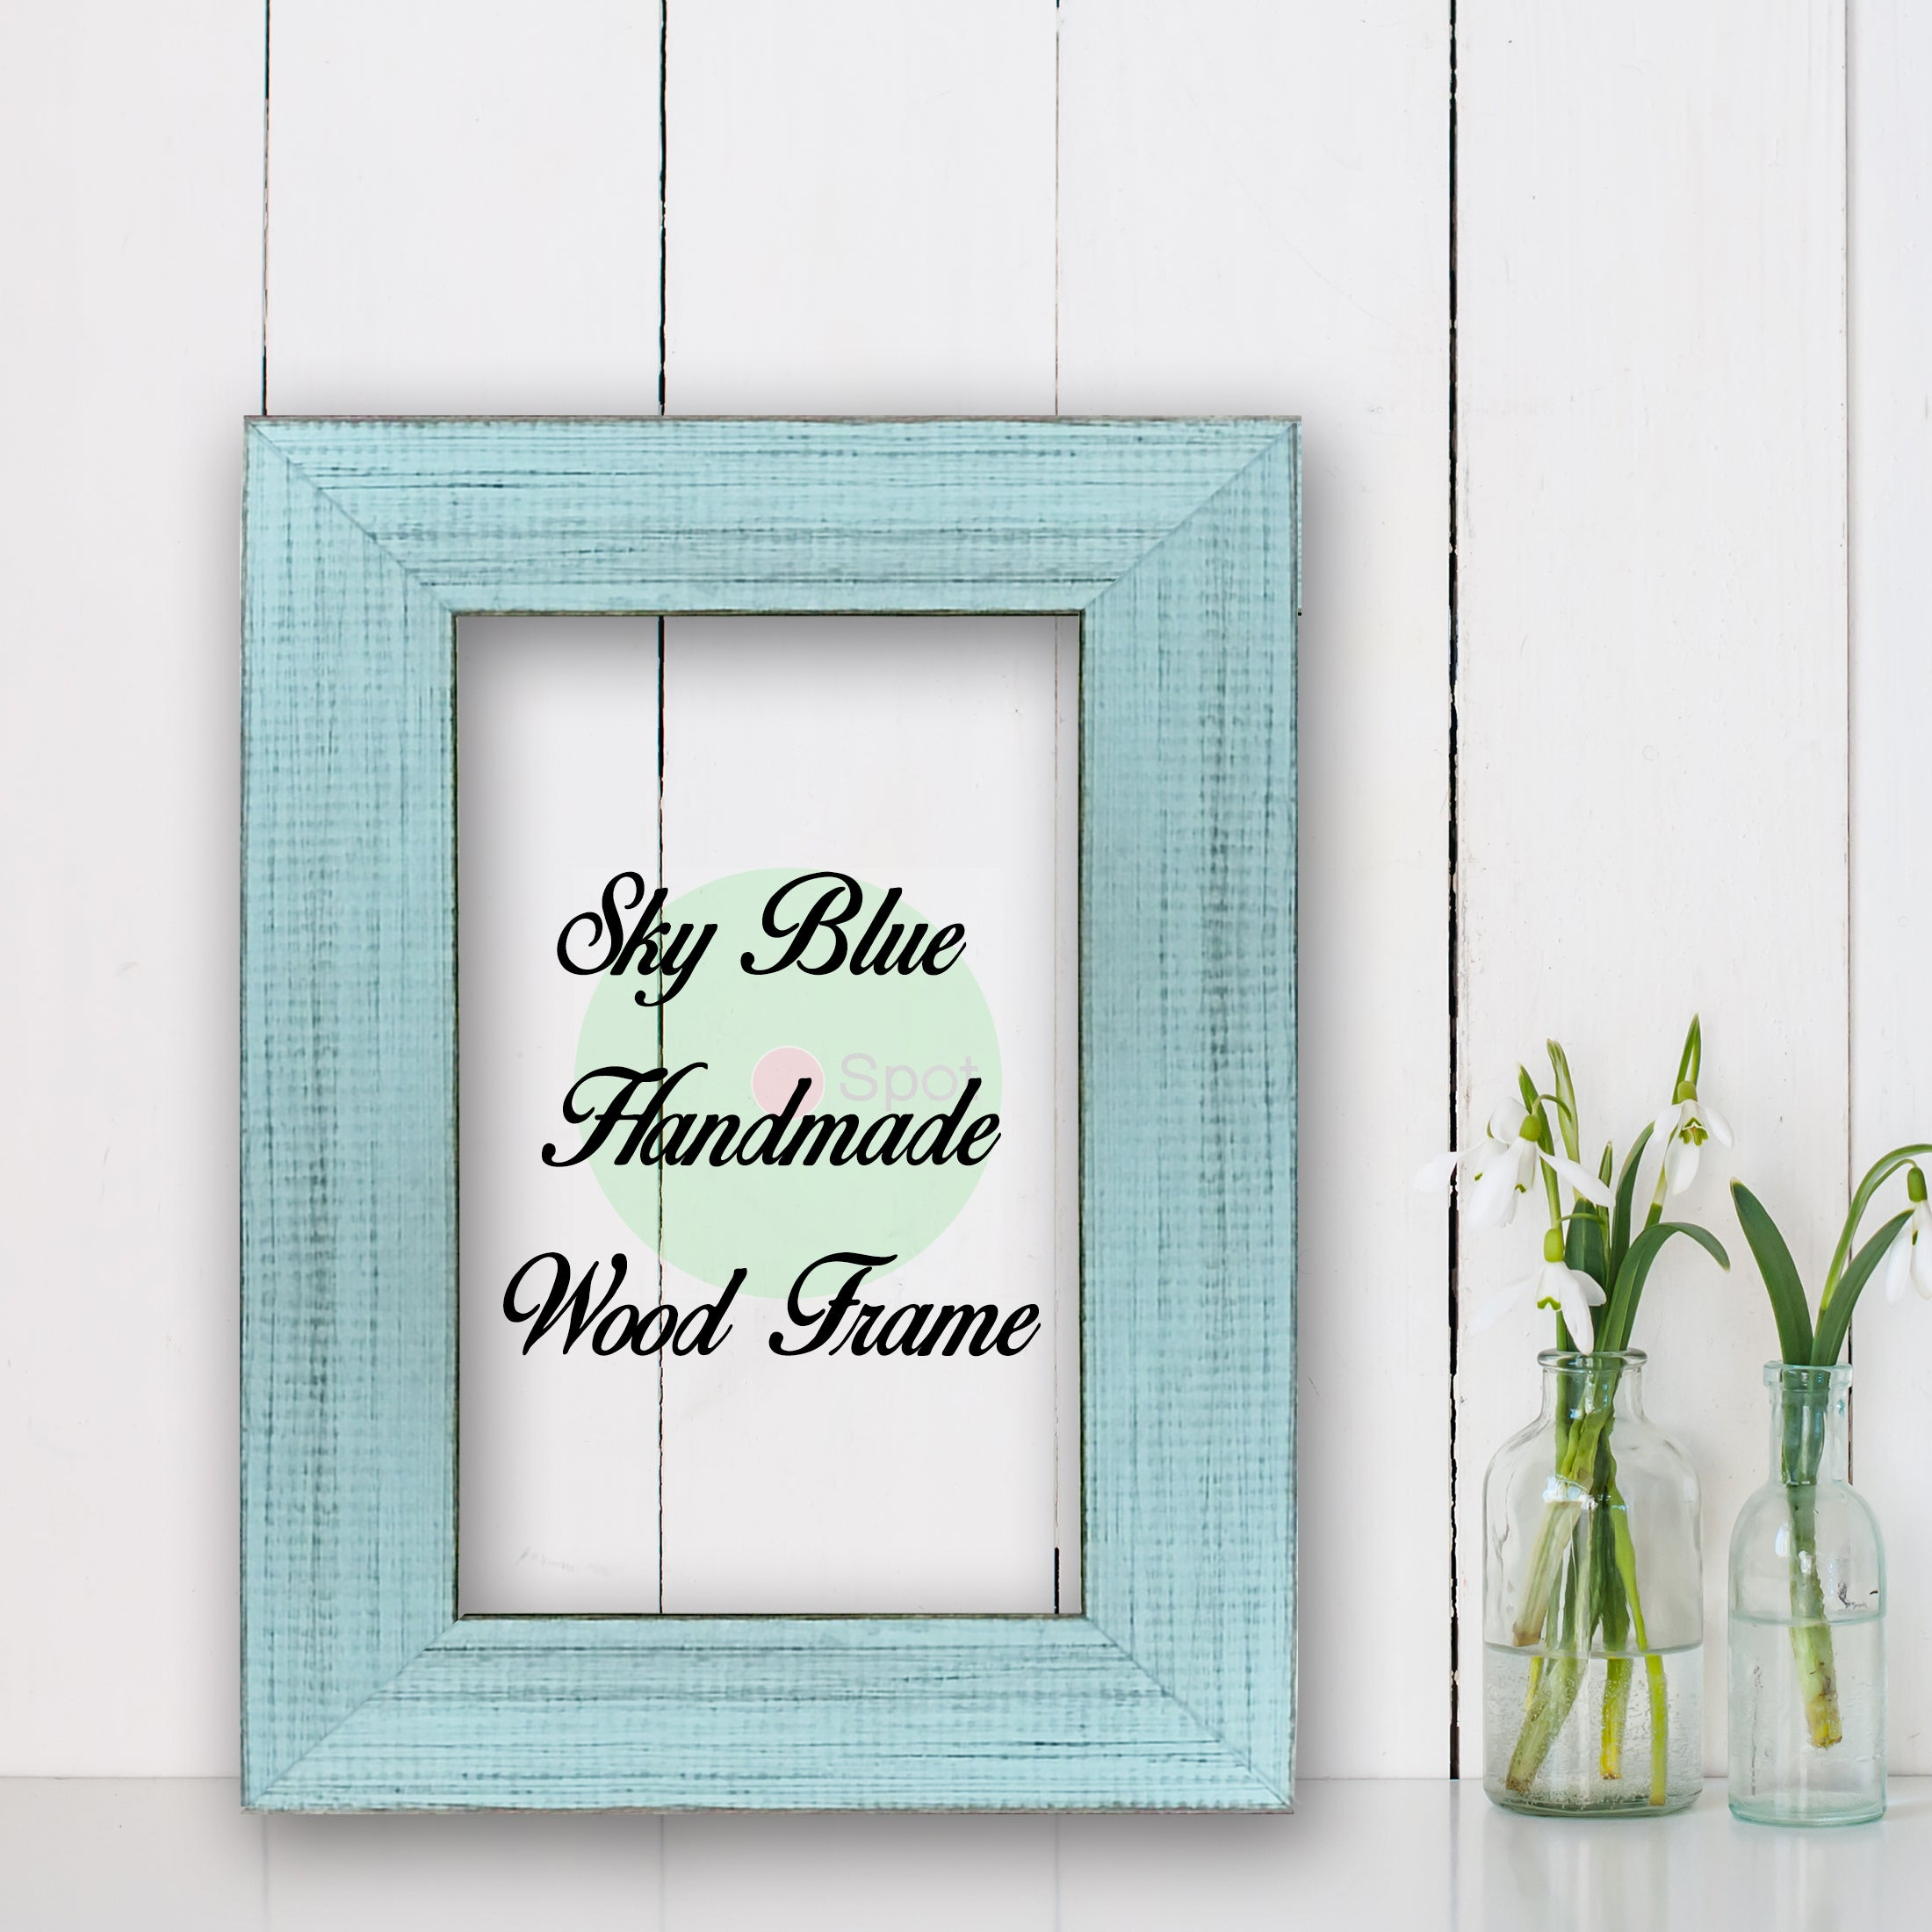 Sky Blue Shabby Chic Home Decor Custom Frame Great for Farmhouse Vintage Rustic Wood Picture Frame